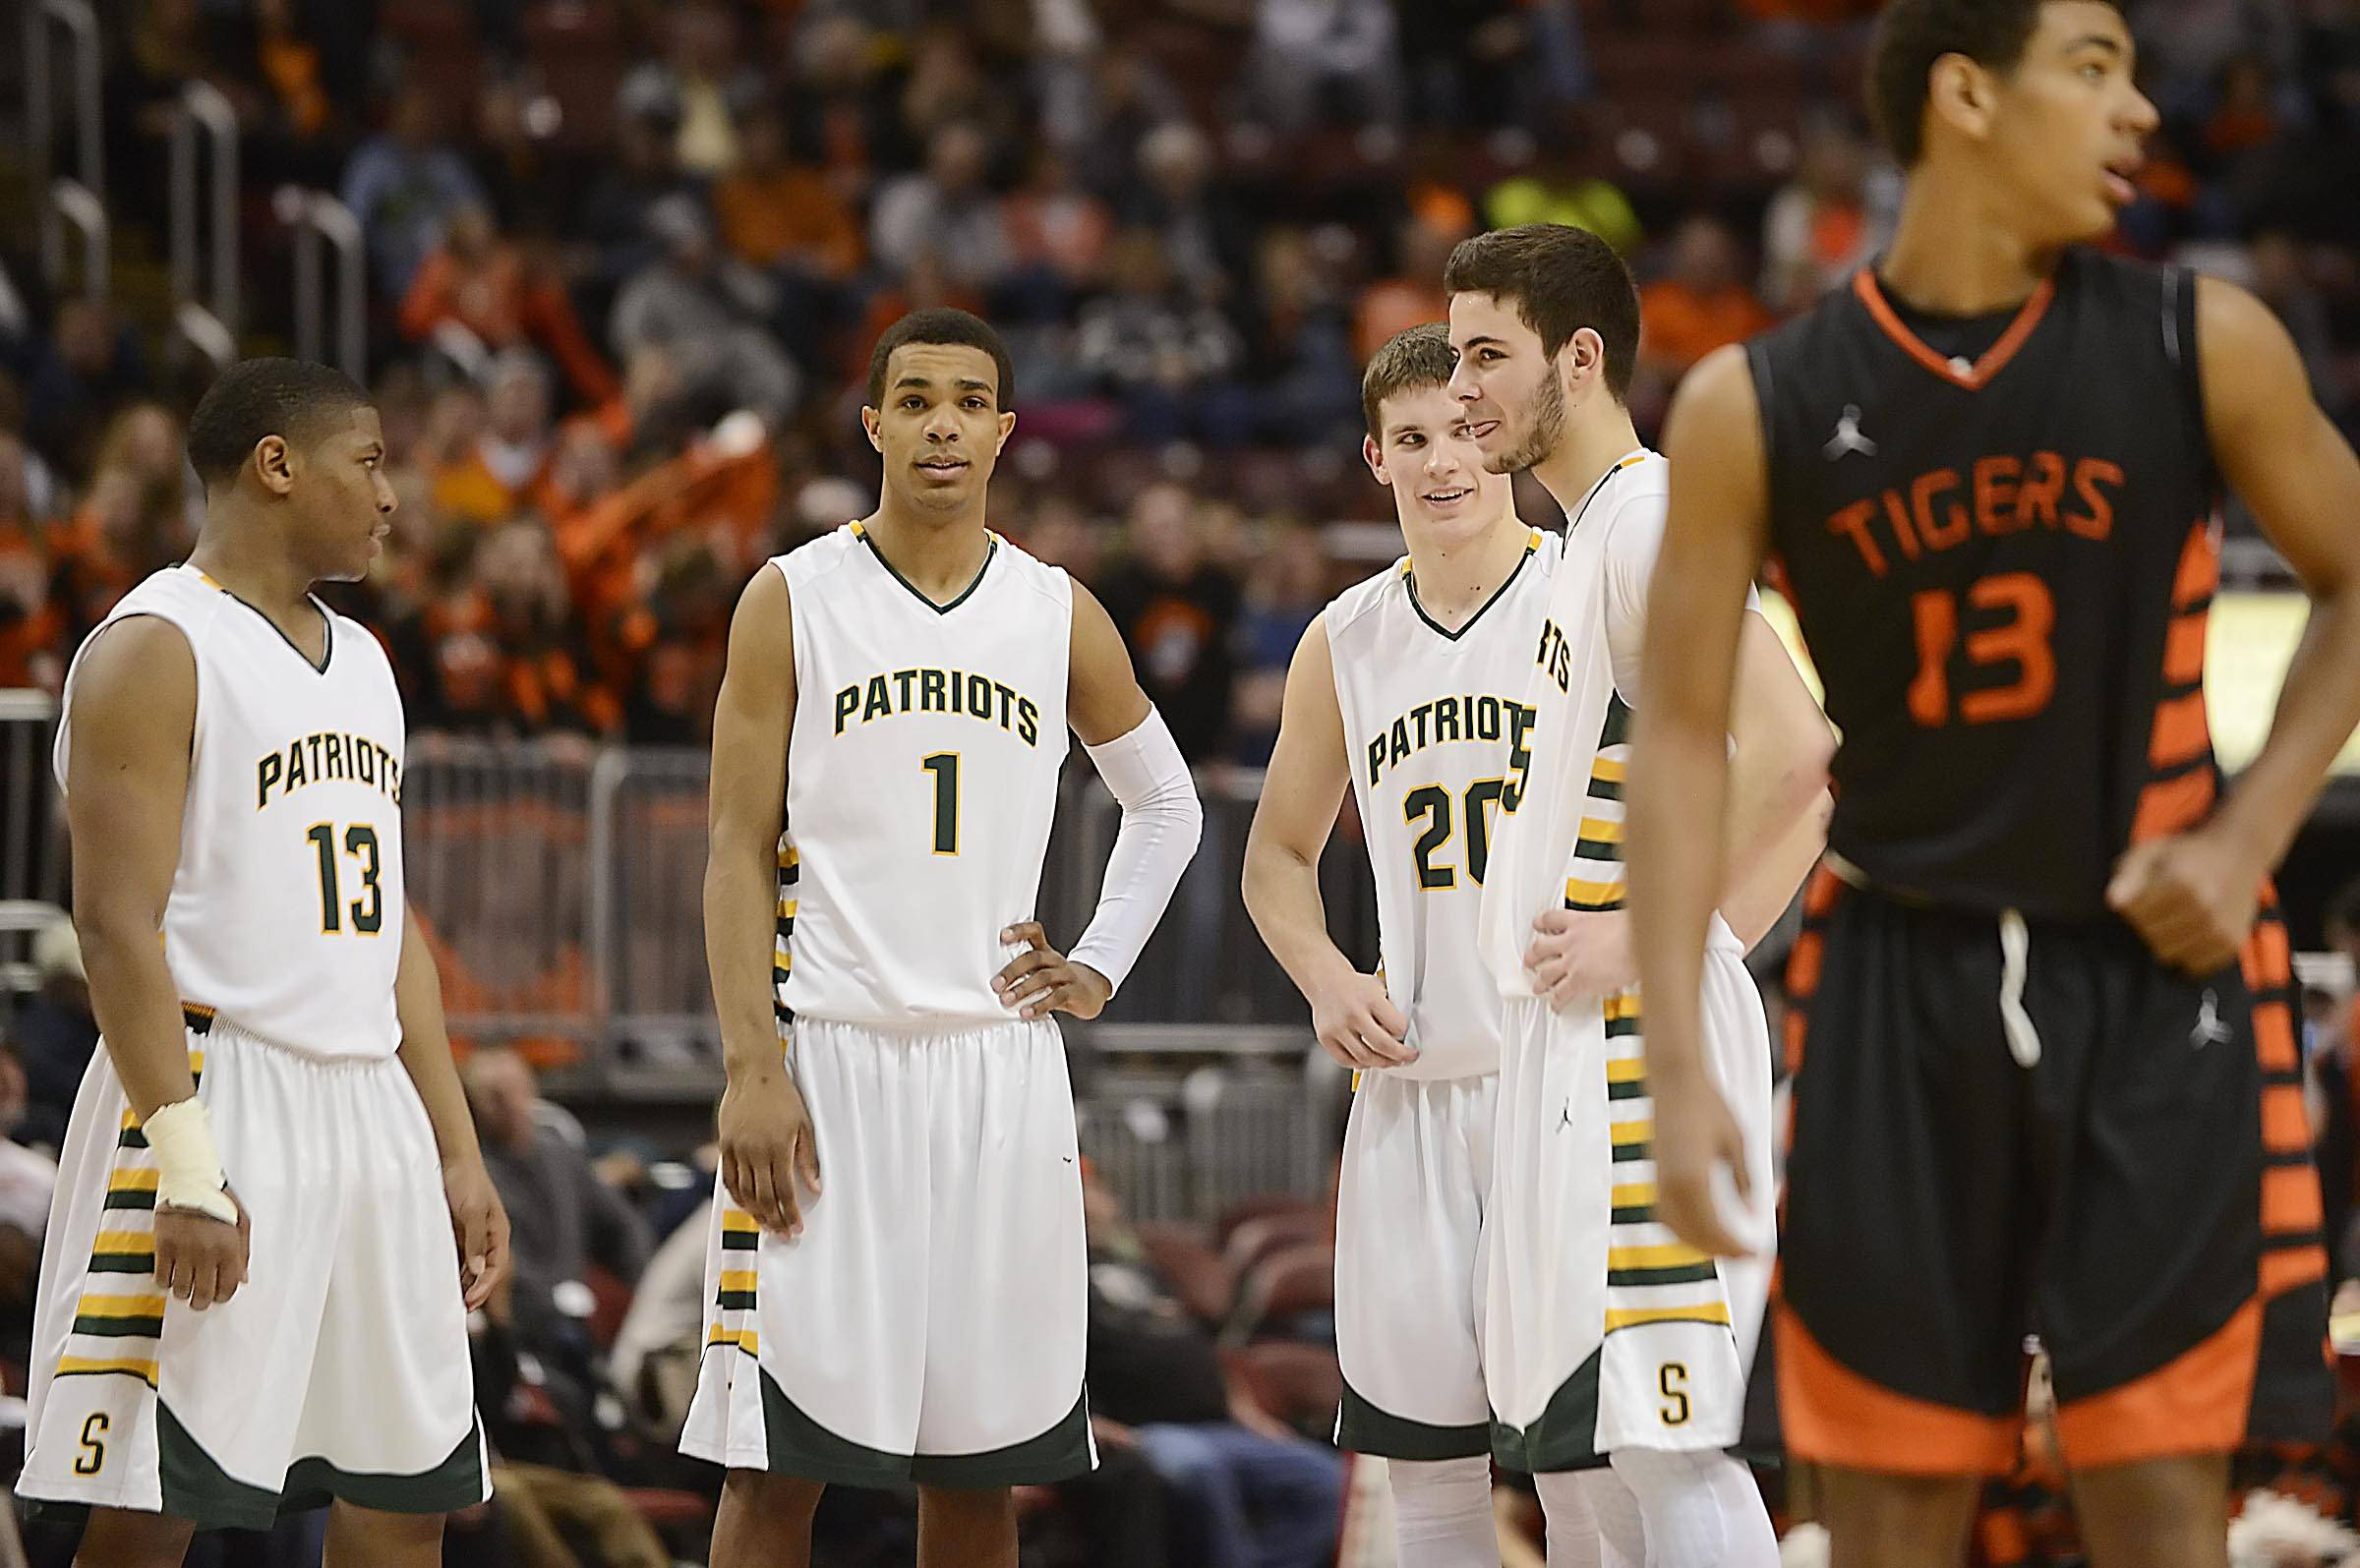 Stevenson's Matthew Johnson, Connor Cashaw,Matt Morrissey, and Parker Nichols begin to relax in the final minutes of their win over Edwardsville in the Class 4A state third place game at Carver Arena in Peoria Saturday.